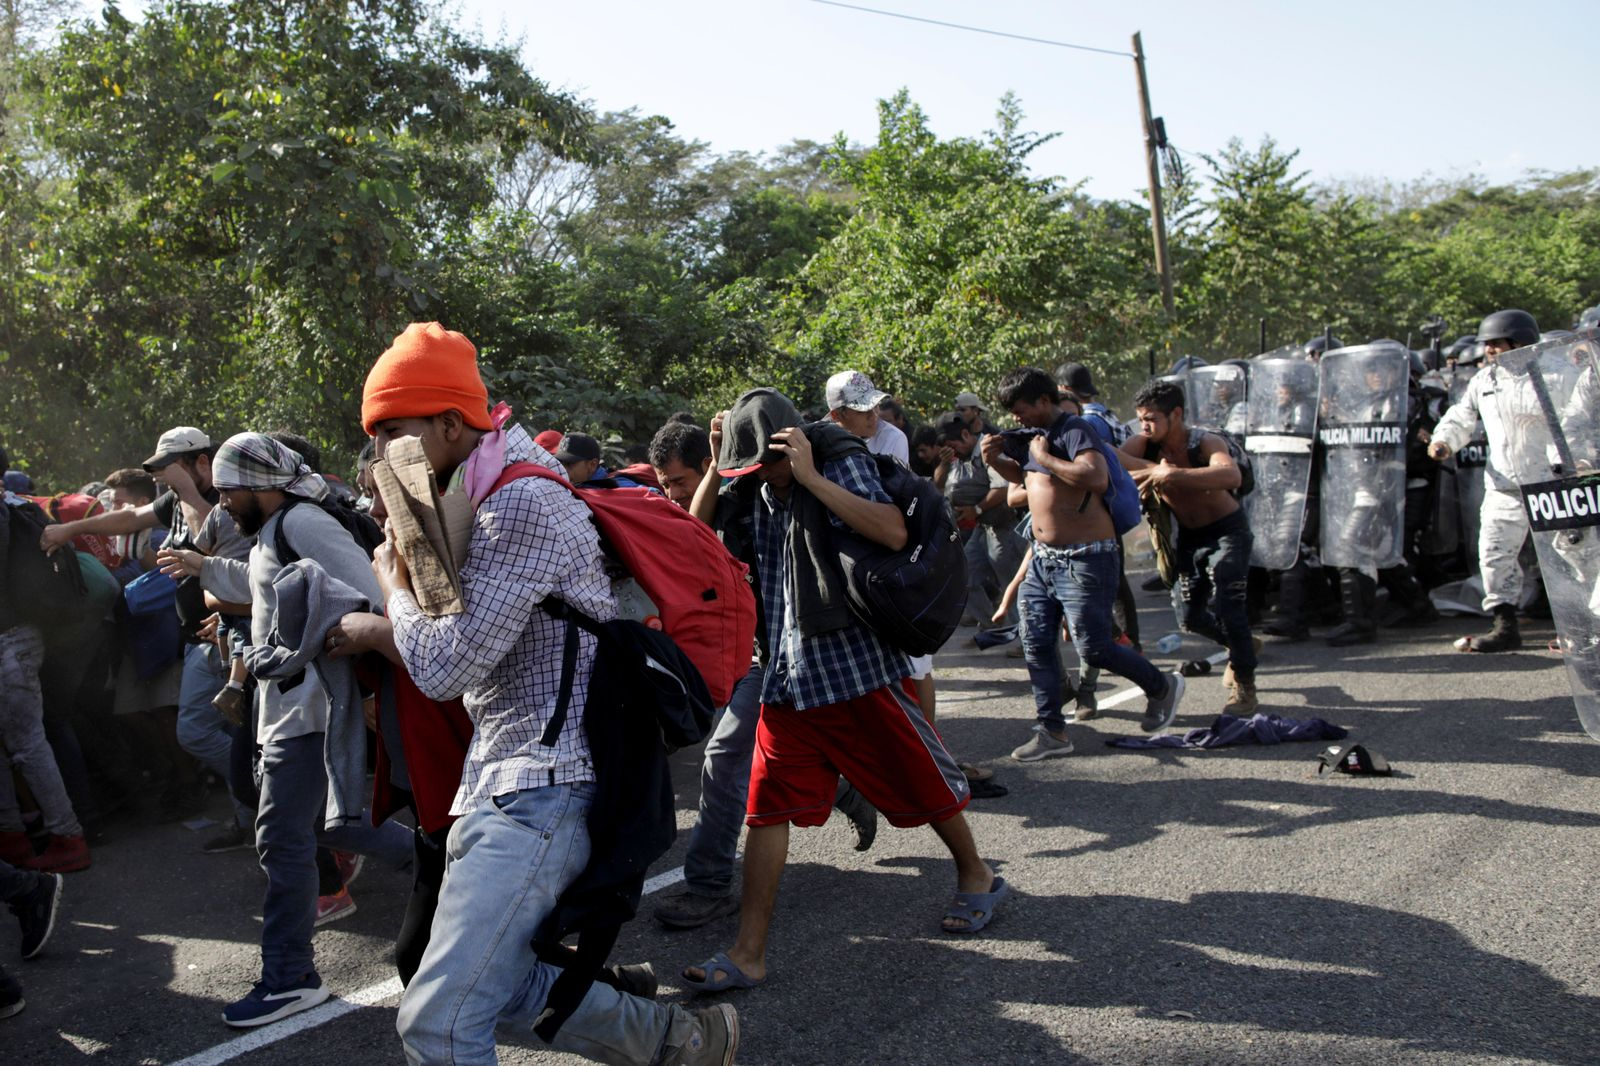 Migrants, mainly from Central America and marching in a caravan, react as members of the security forces approach them, near Frontera Hidalgo, Chiapa